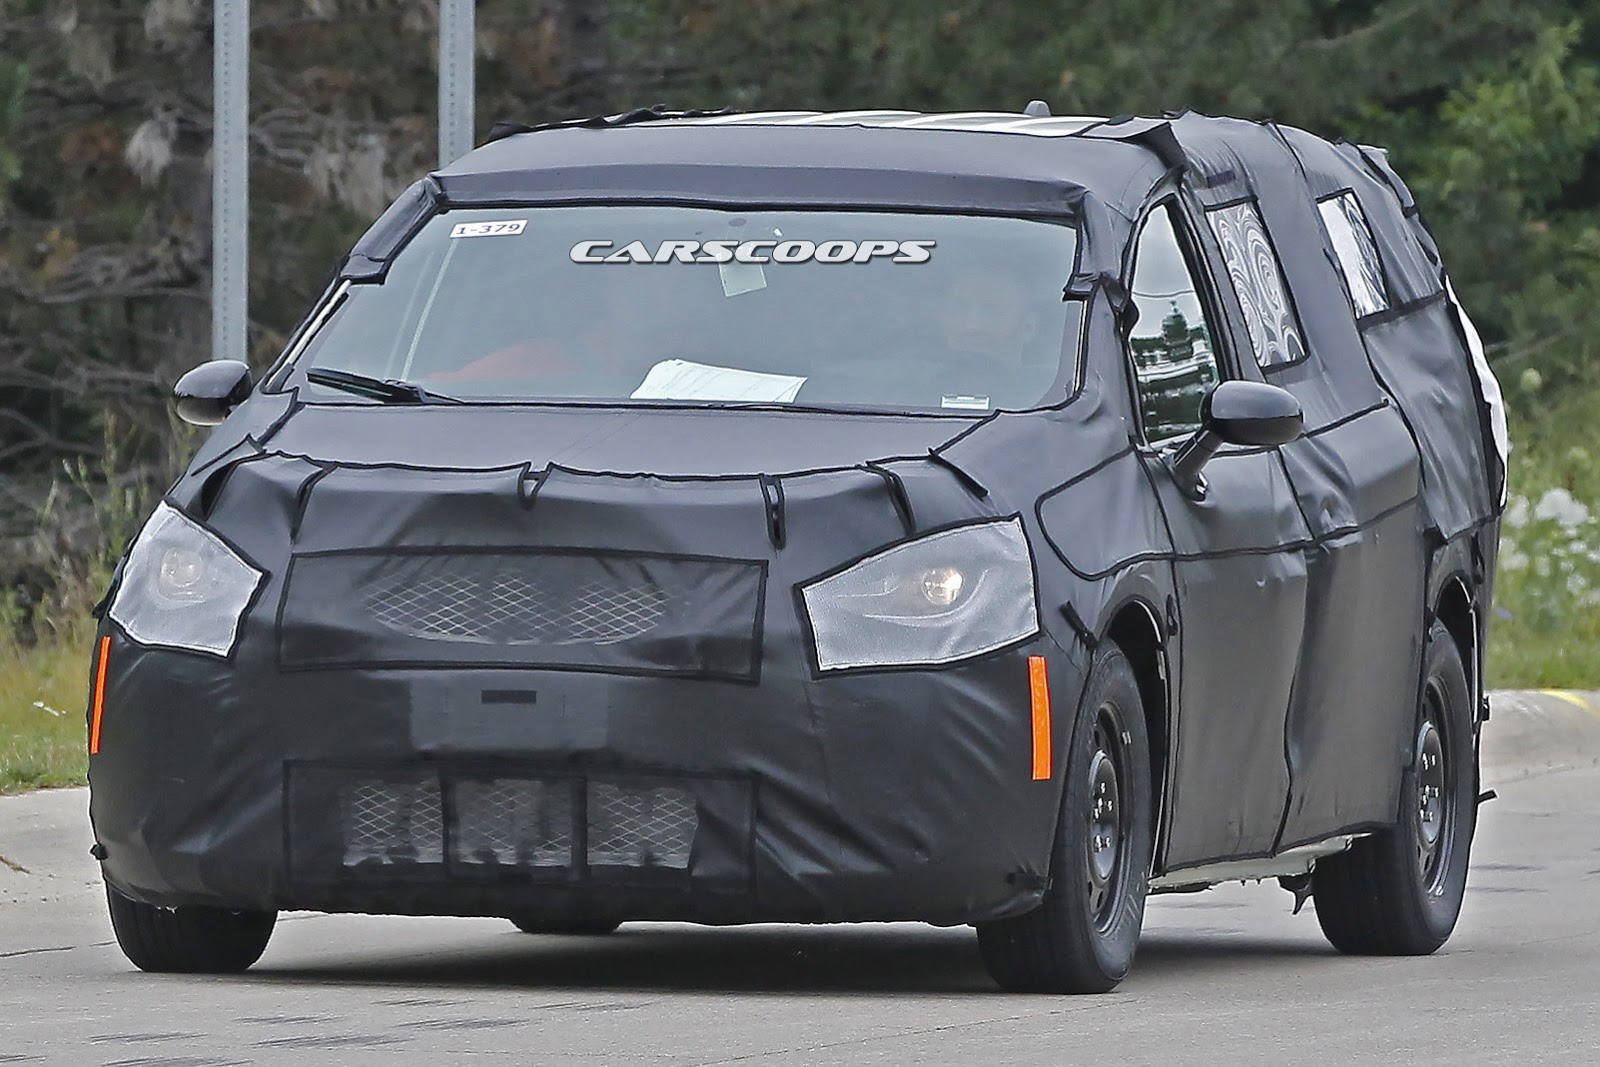 Thread 2017 Chrysler Town Country Dodge Grand Caravan Spied For The First Time